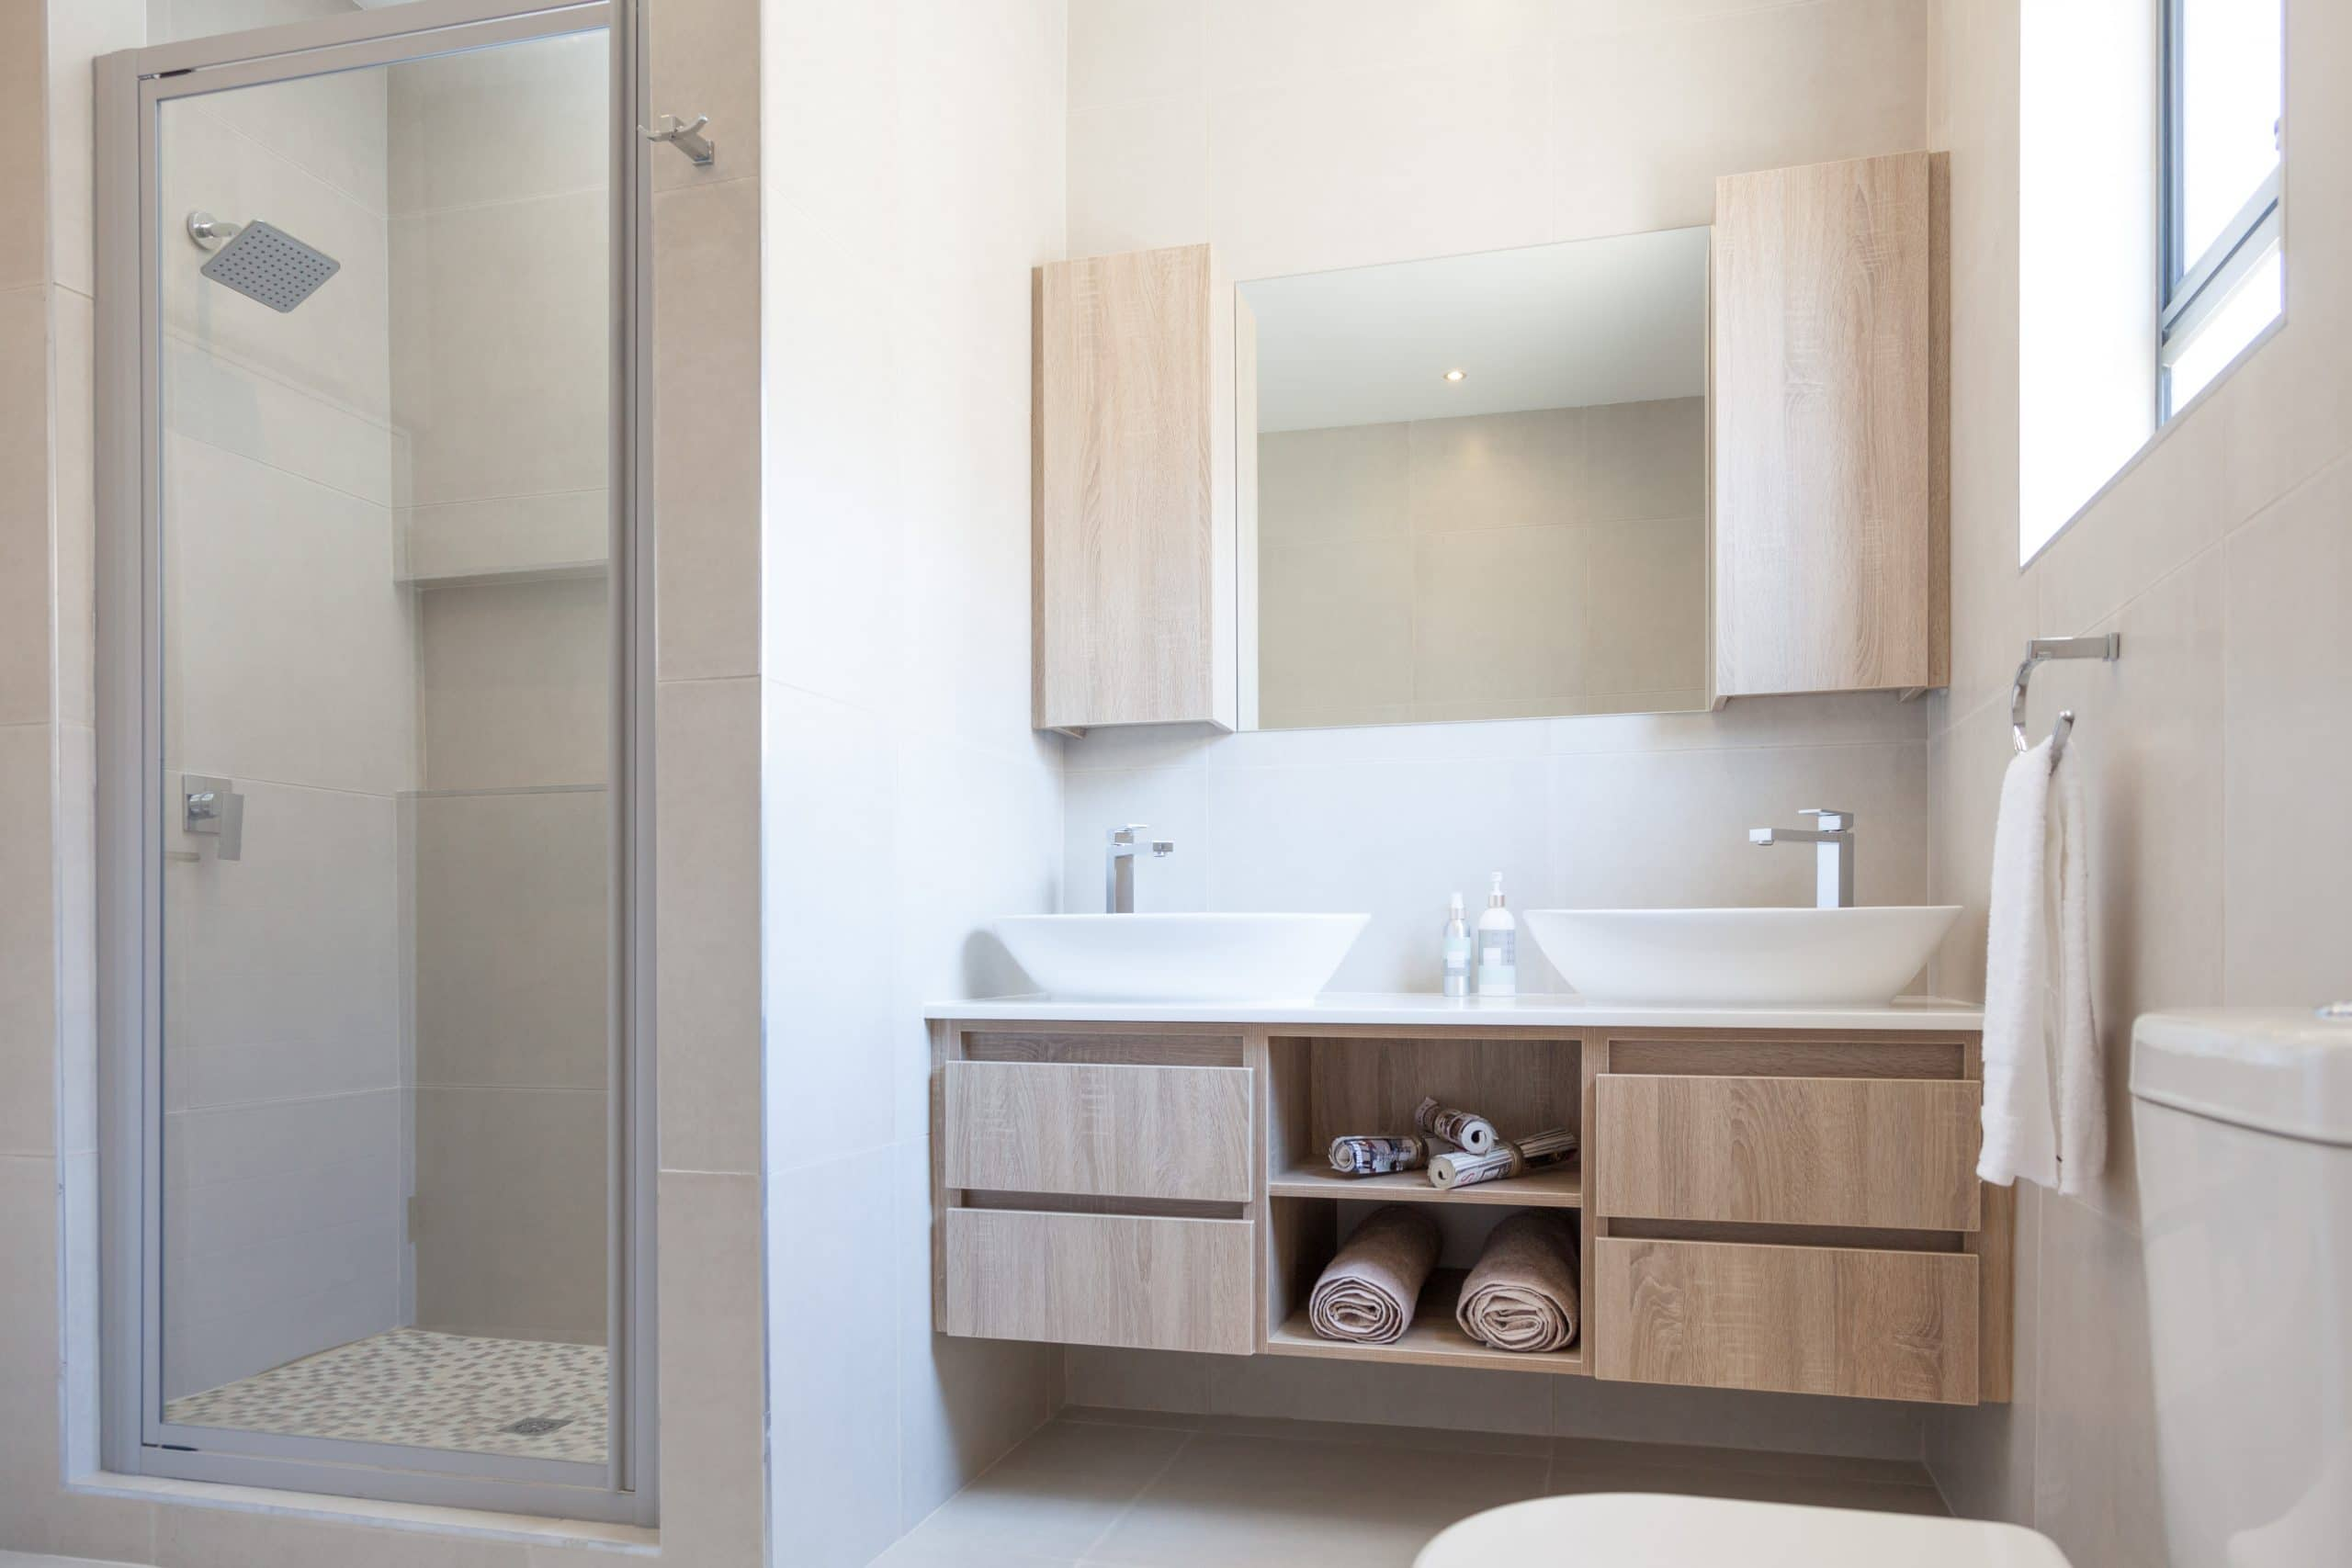 modern bathroom shower with double vanity basins and mirror